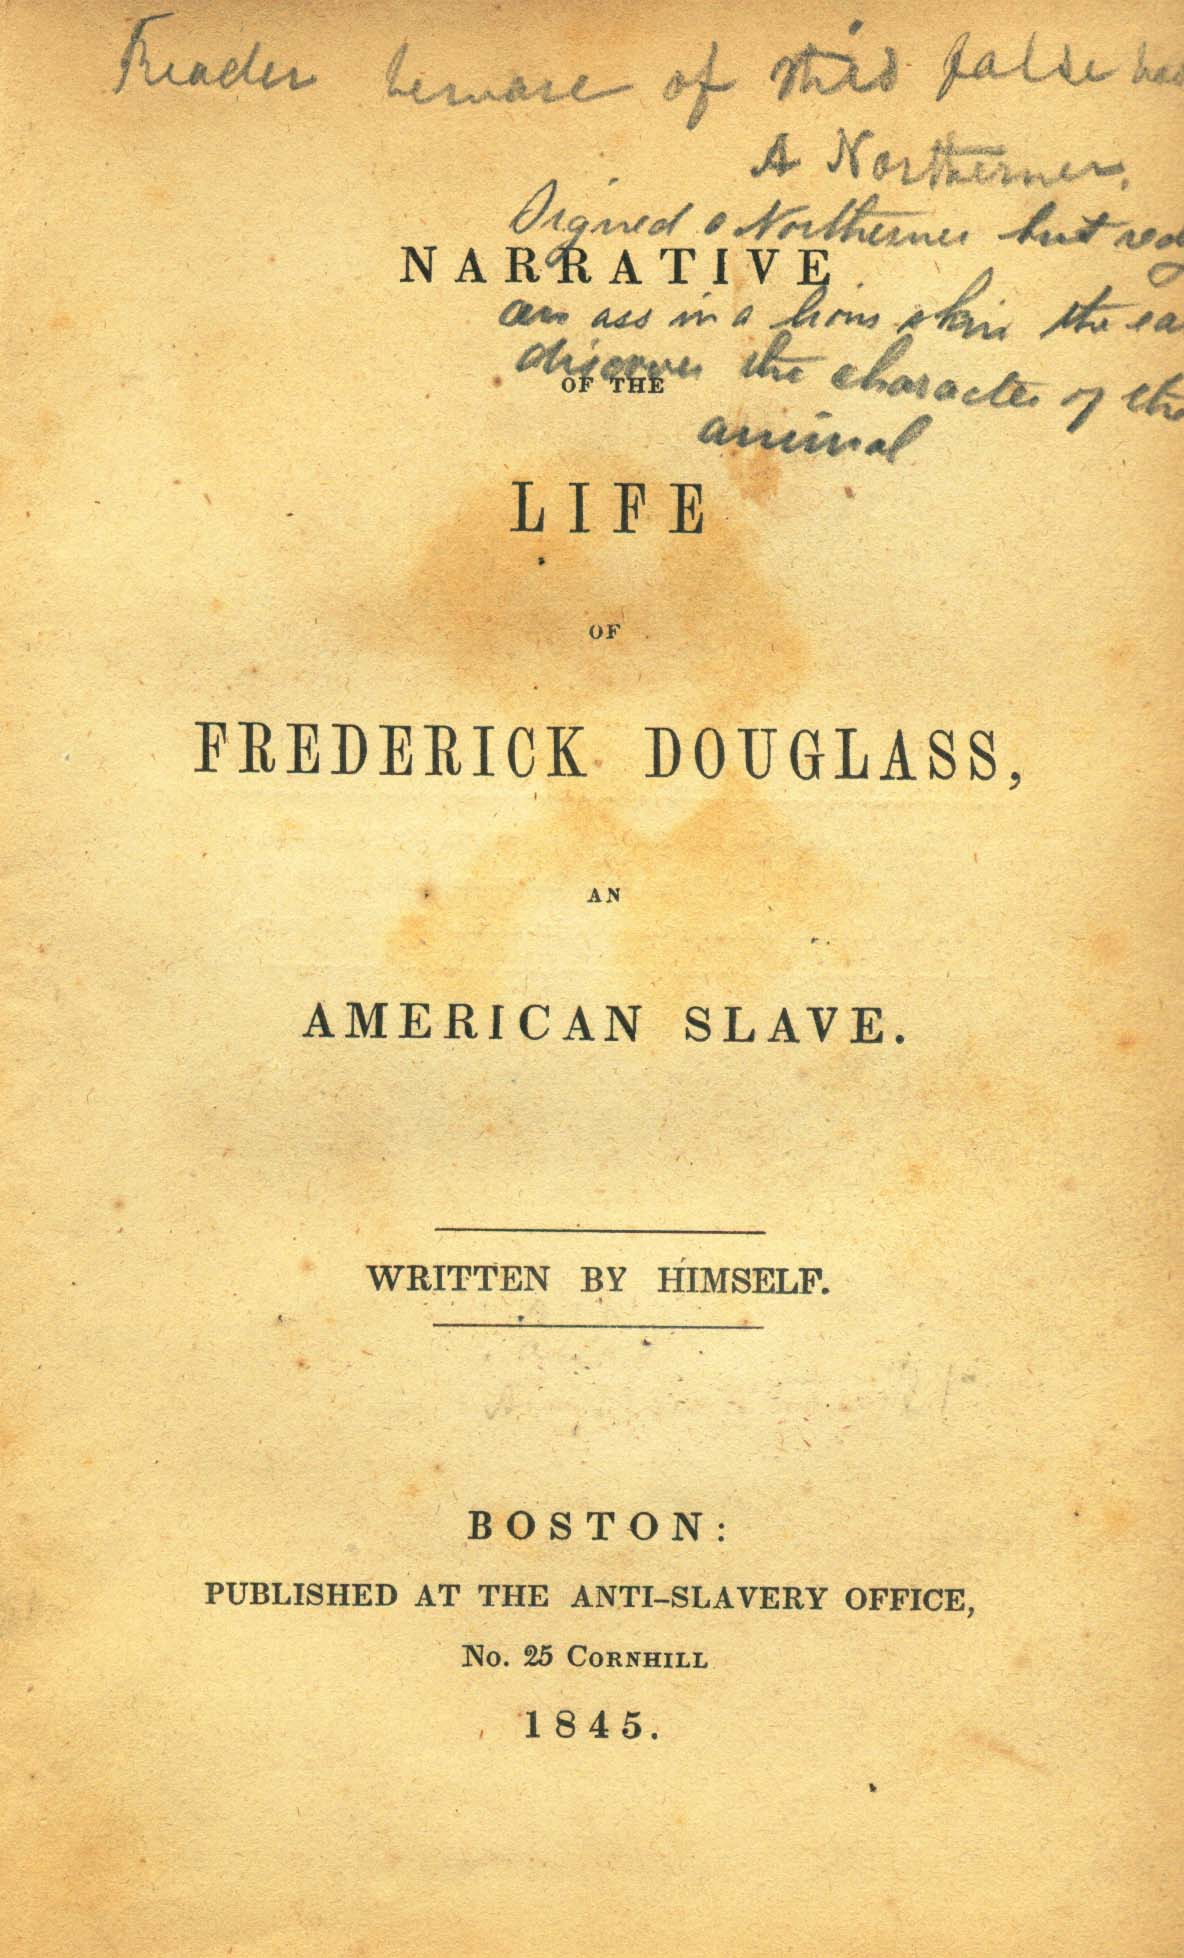 narrative life of frederick douglass essay In the autobiography, the narrative of the life of frederick douglass, an american slave, there is an underlying theme of knowledge as the path to freedom.